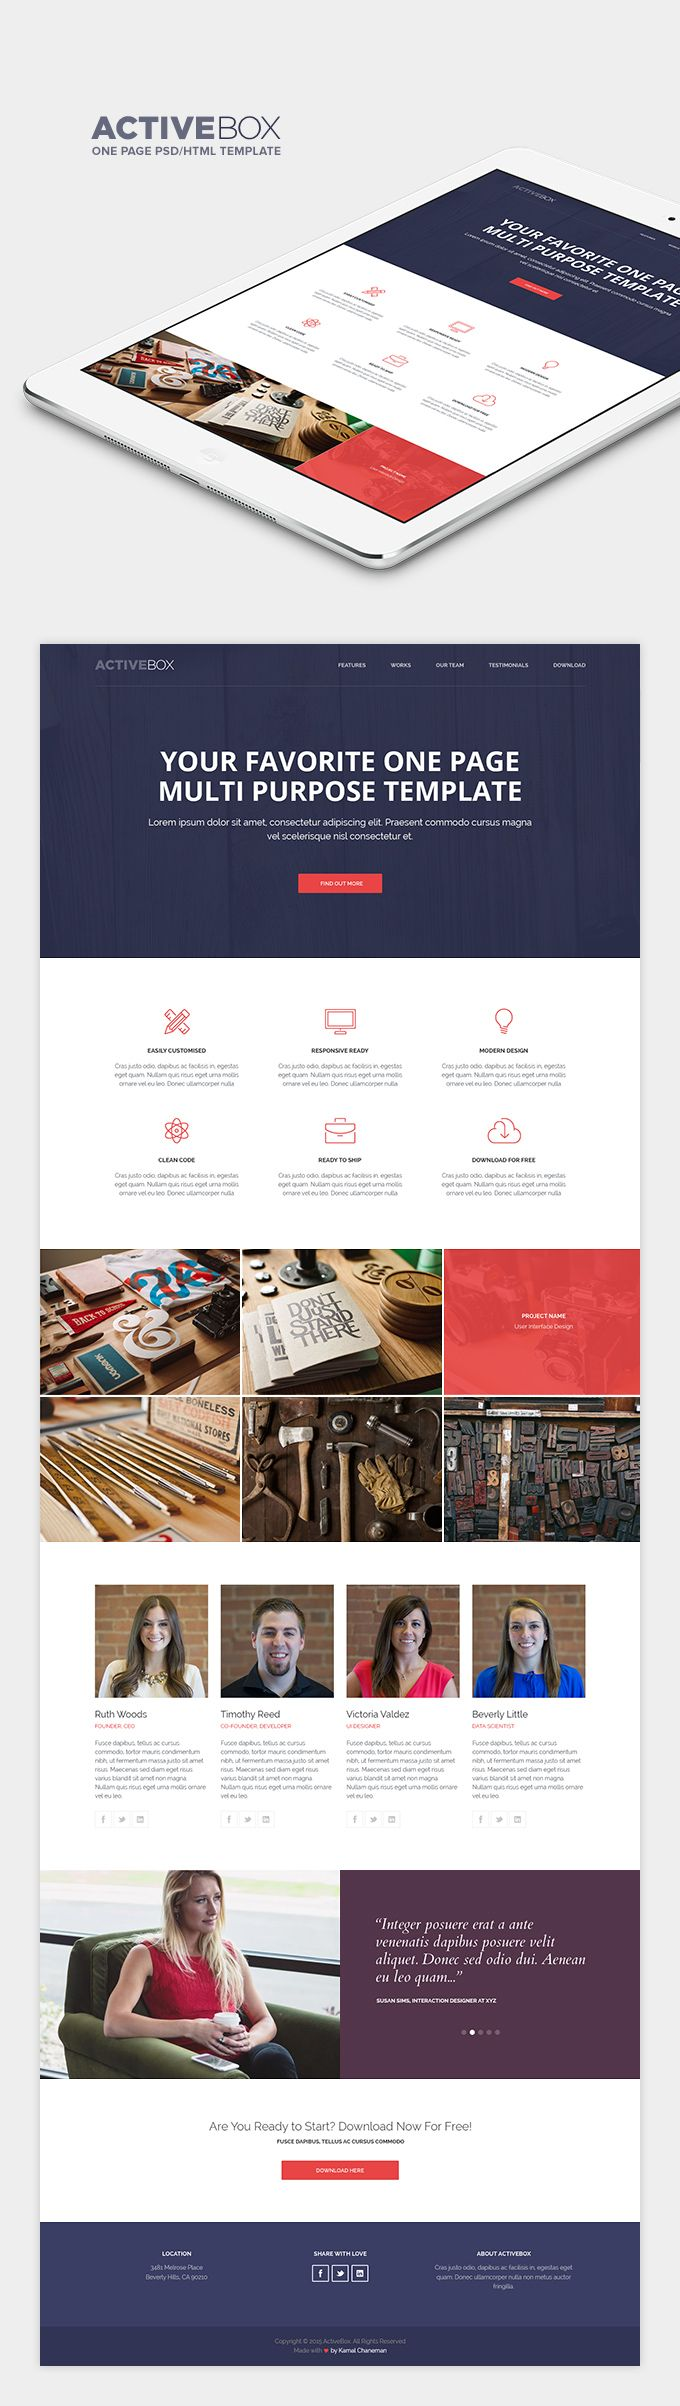 A very clean multi-purpose responsive one-page HTML template made by Kamal Chaneman for PixelBuddha.